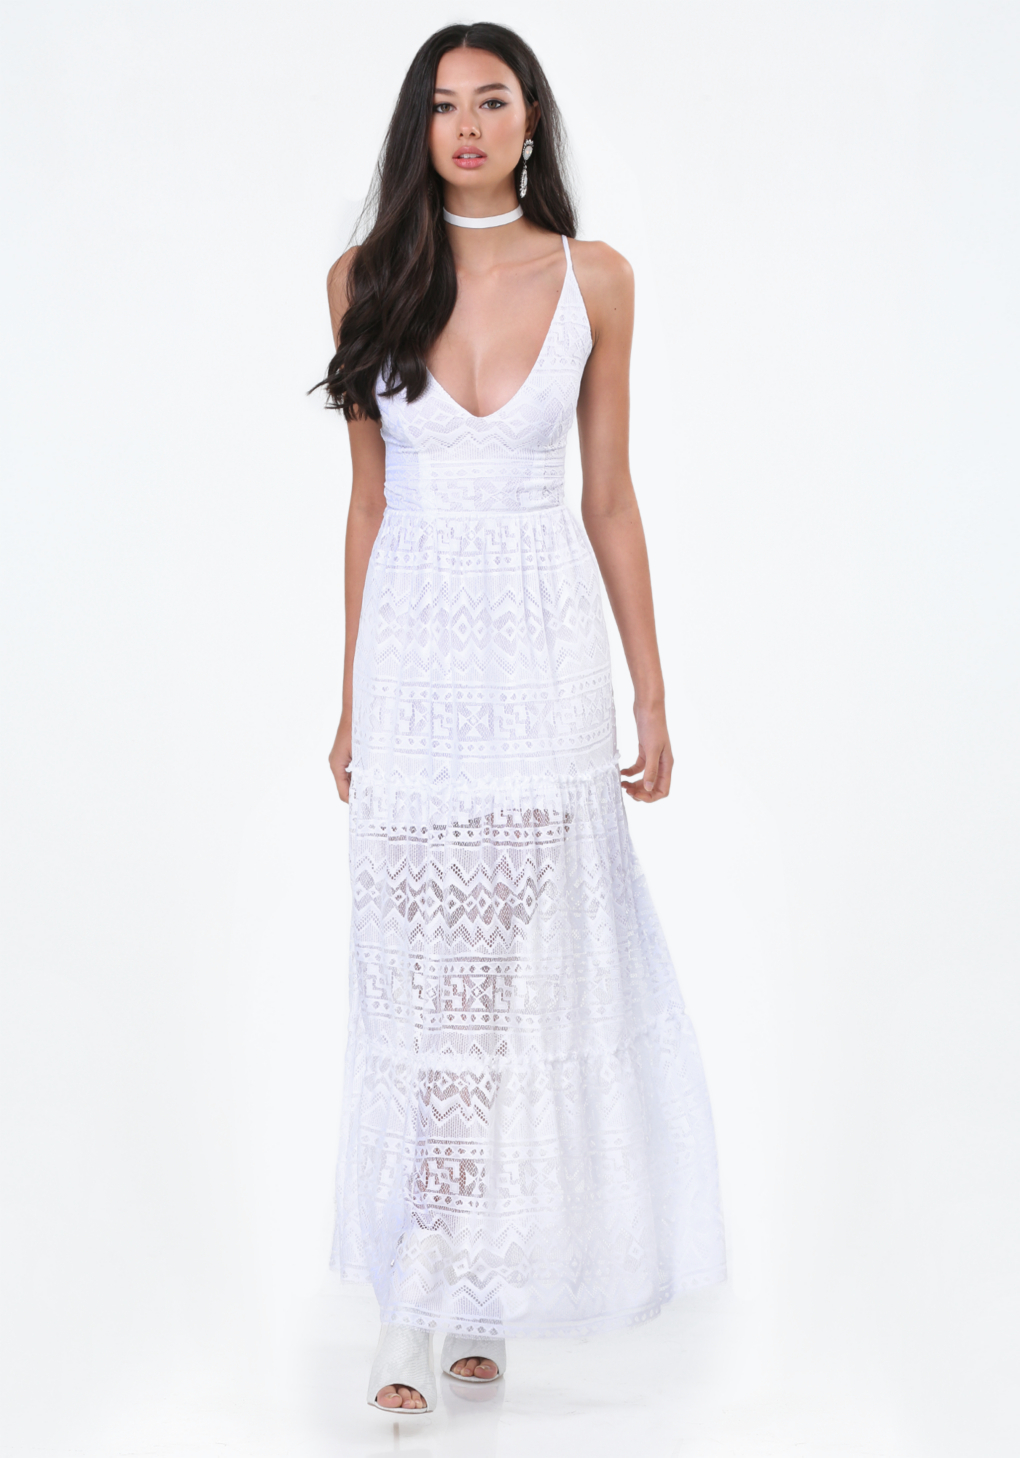 Conversely, a blue maxi dress, red maxi dress, or yellow maxi dress can be worn beautifully with golds, silvers, and other neutral-toned pieces. Wear one of these colors on a lace maxi dress for a soft, gentle, and subtle look.